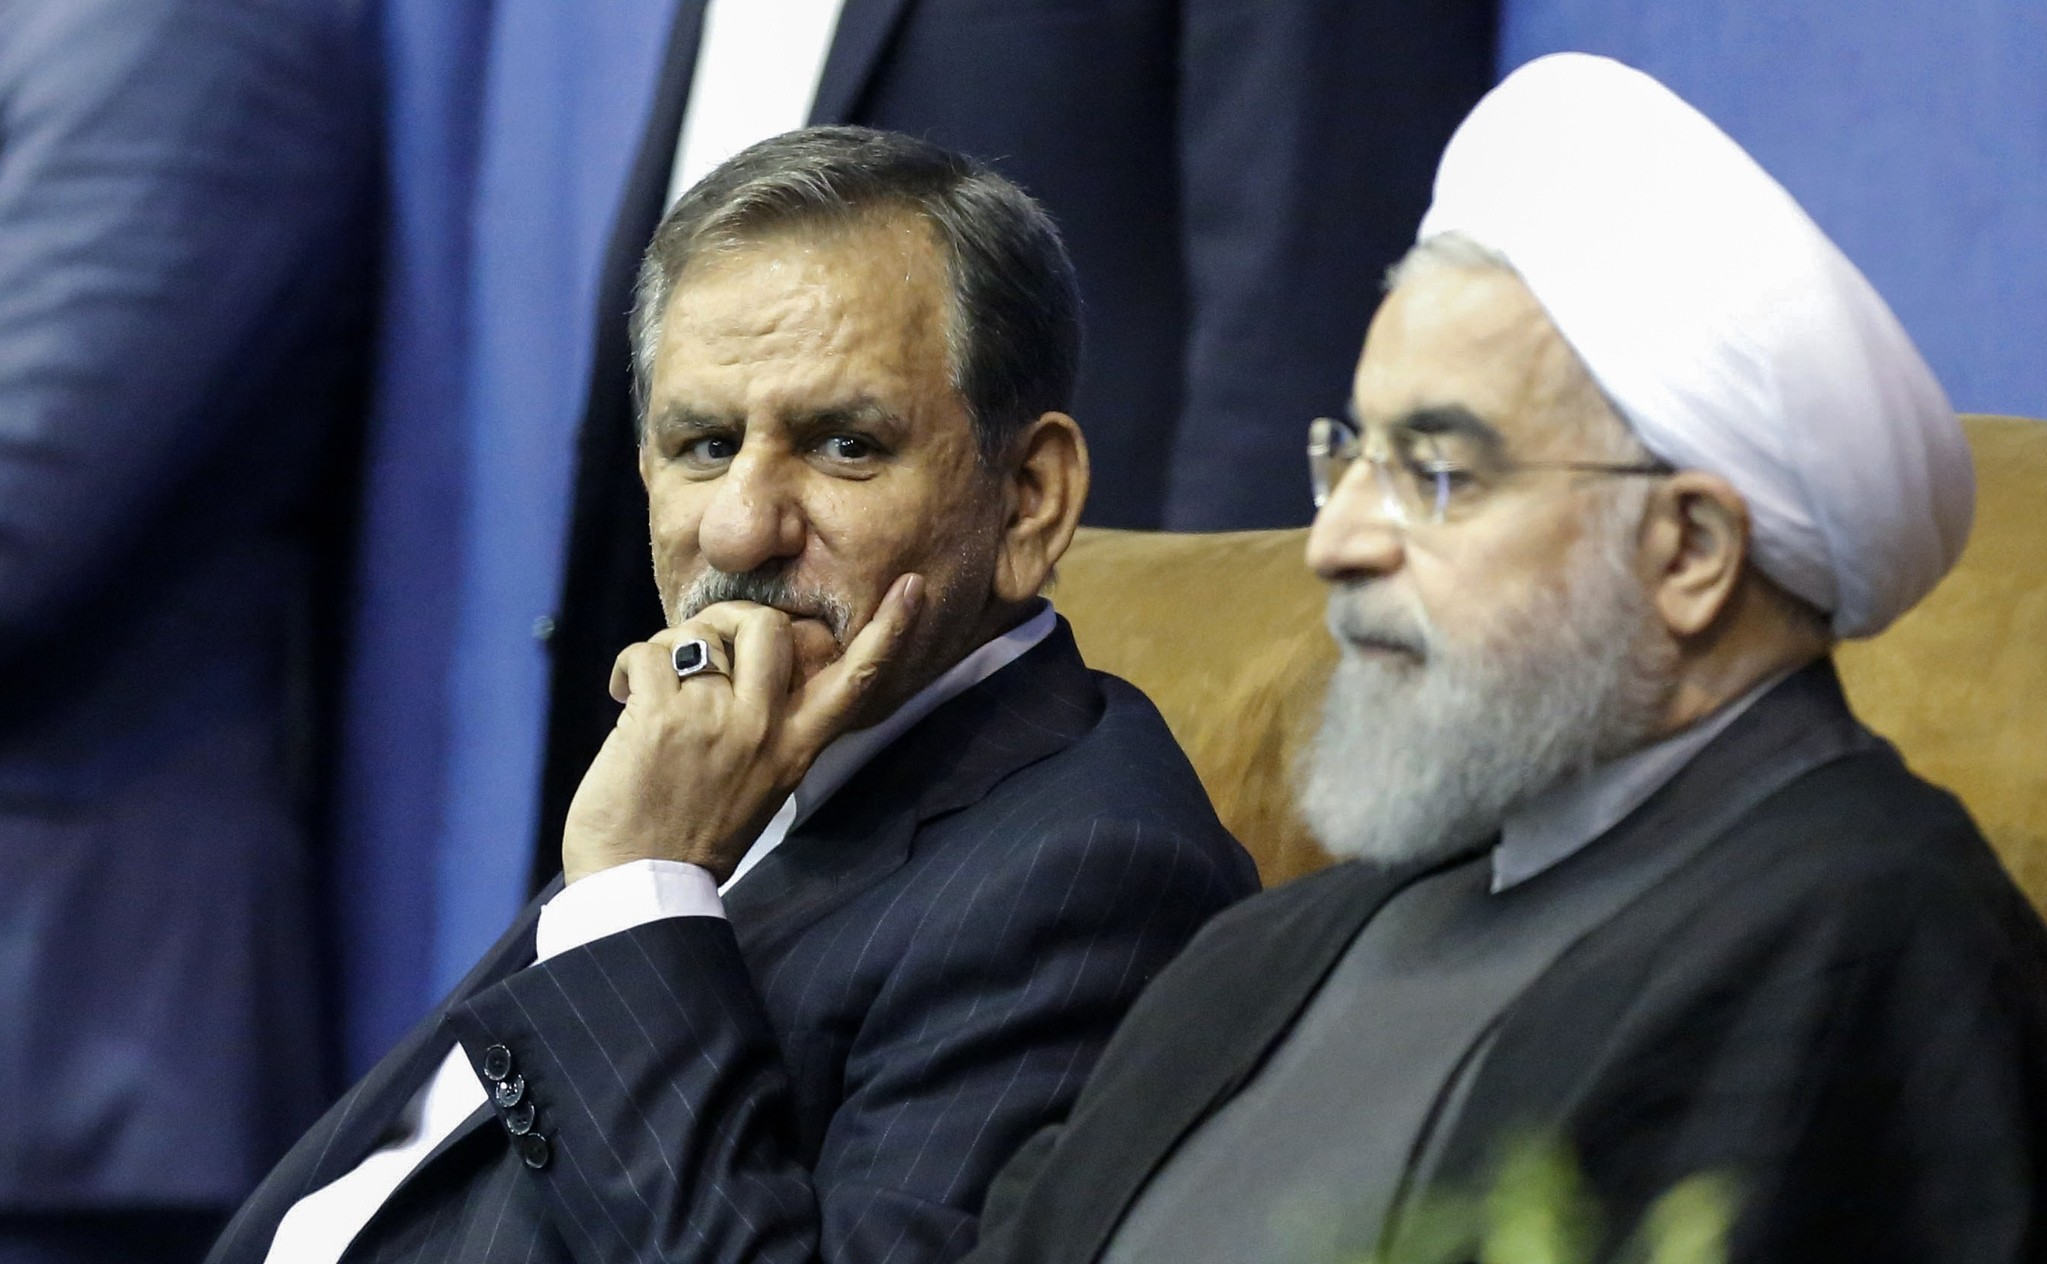 Iranian President and presidential candidate Hassan Rouhani (R), along with current vice-president and presidential candidate Eshaq Jahangiri. (AFP PHOTO )